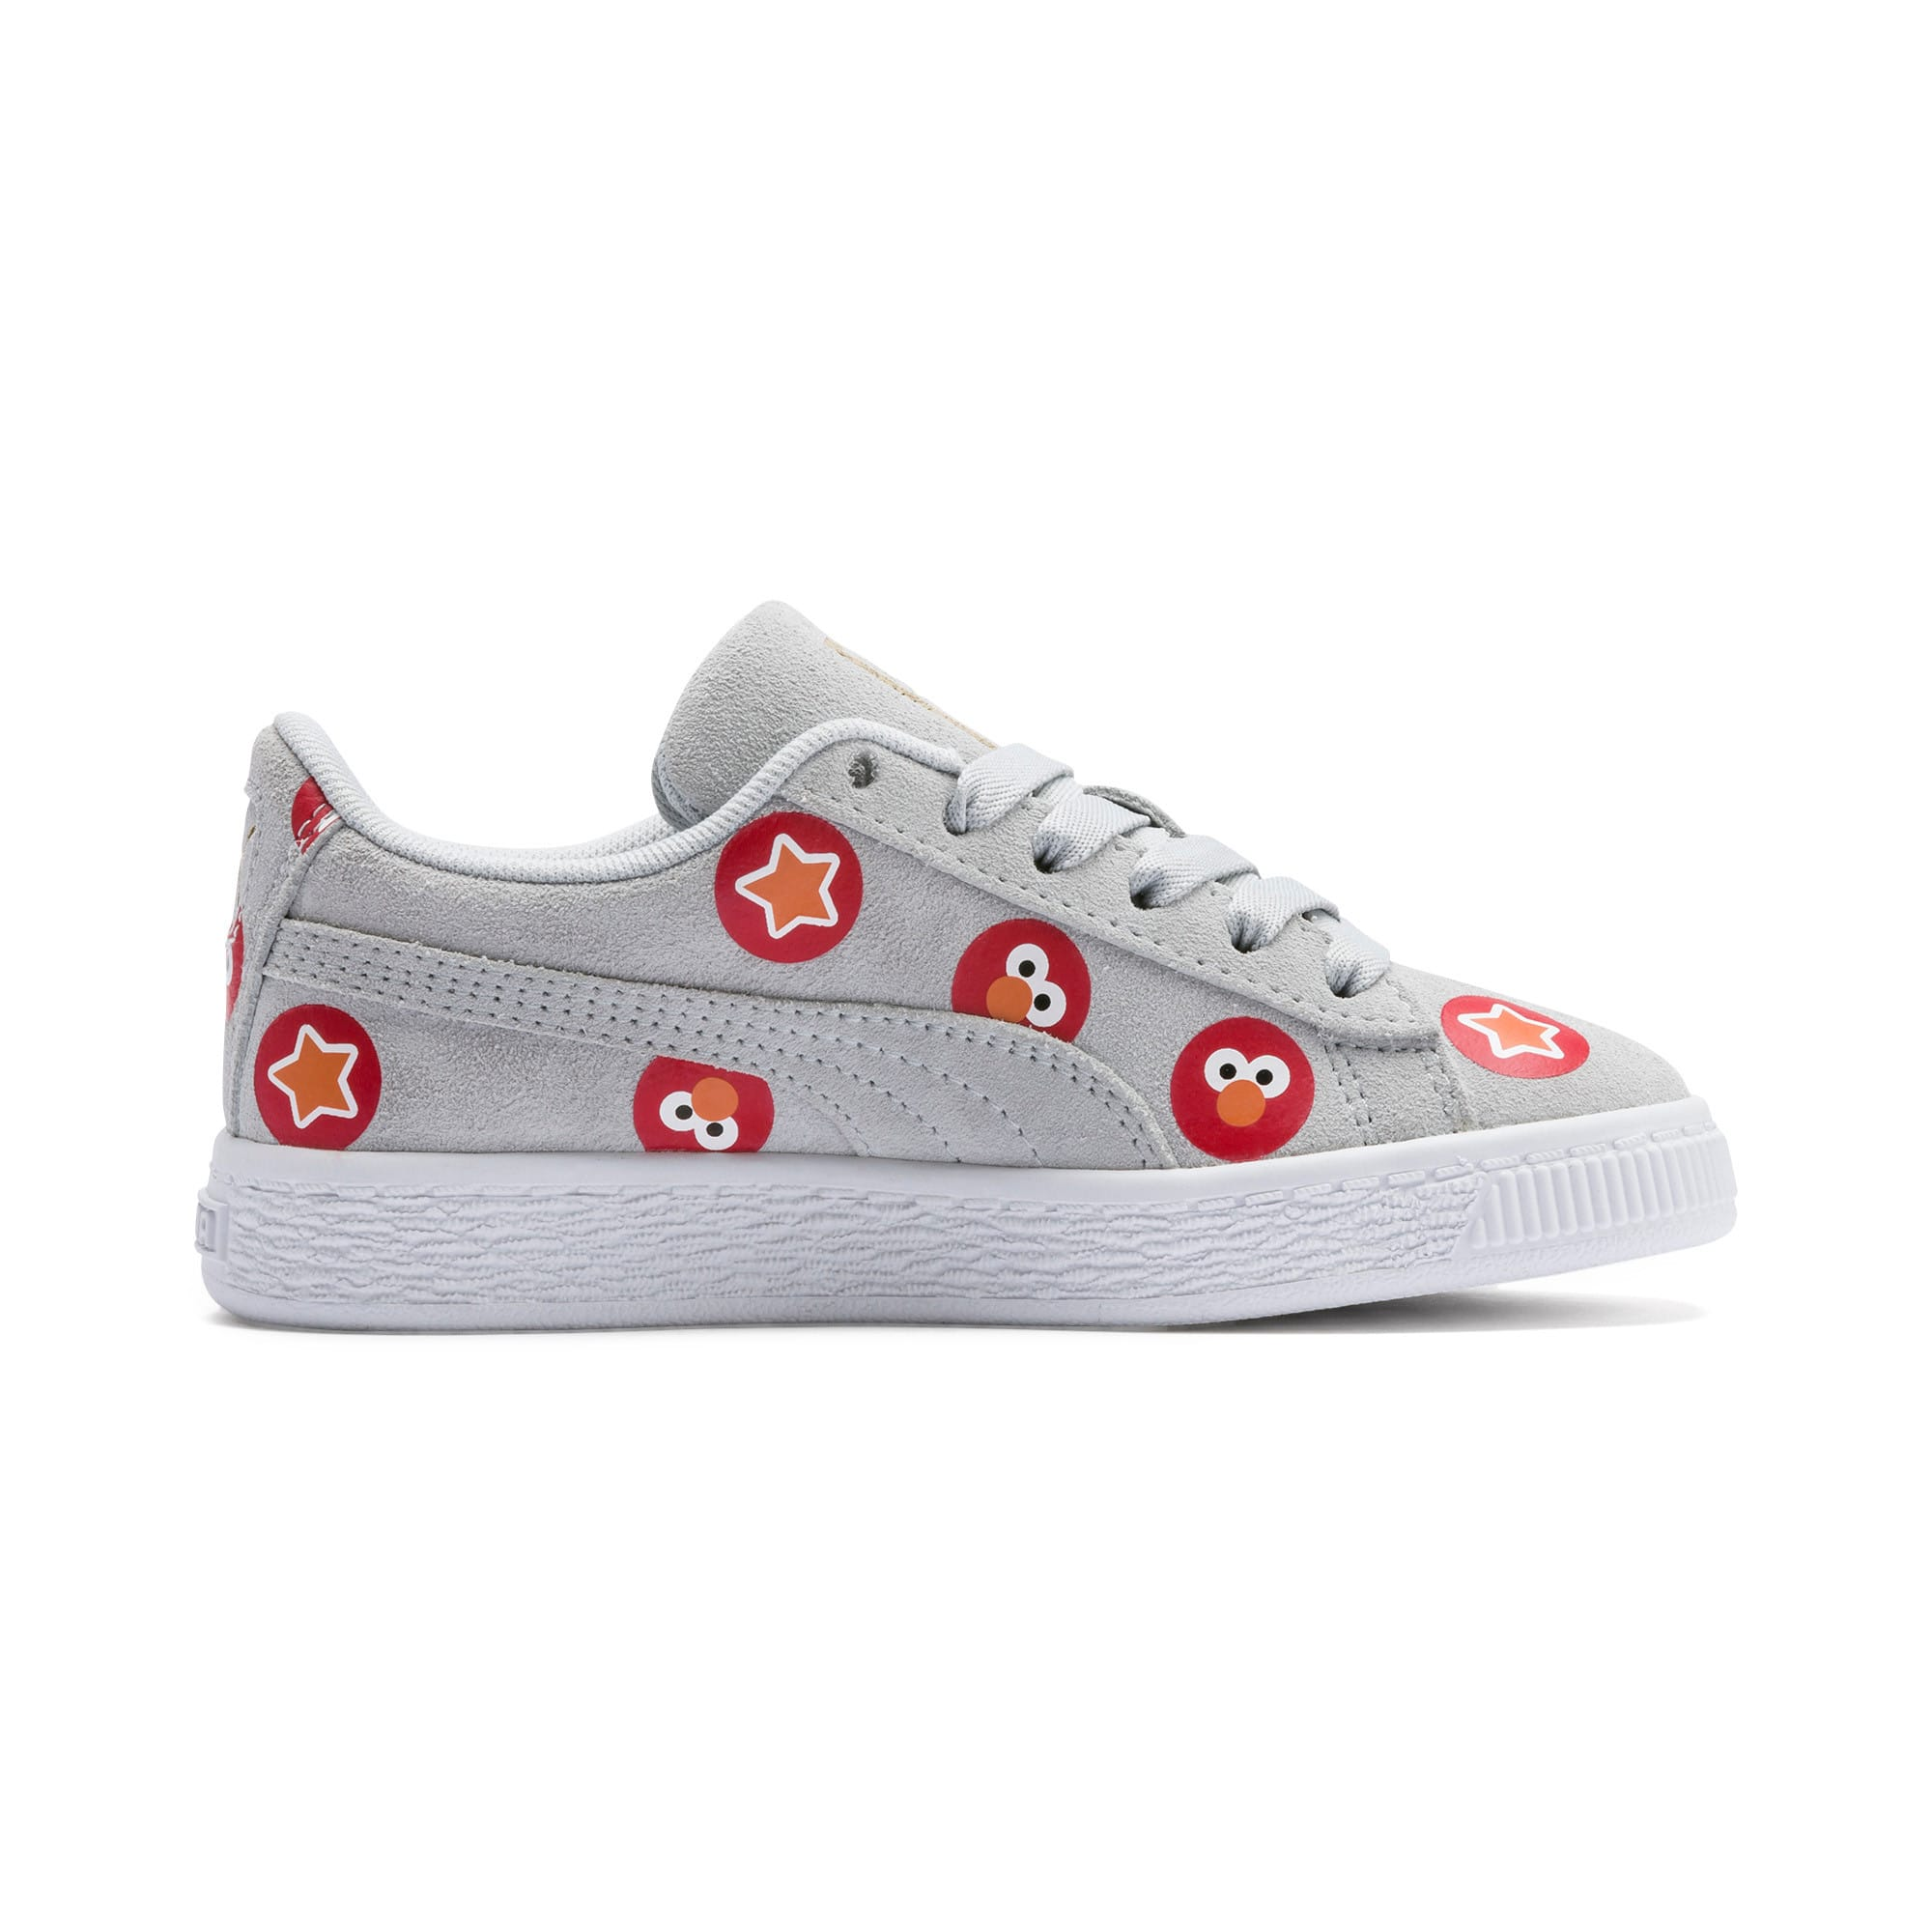 Sesamstraße 50 Suede Badge Kids Sneaker, Grey Dawn-High Risk Red, large